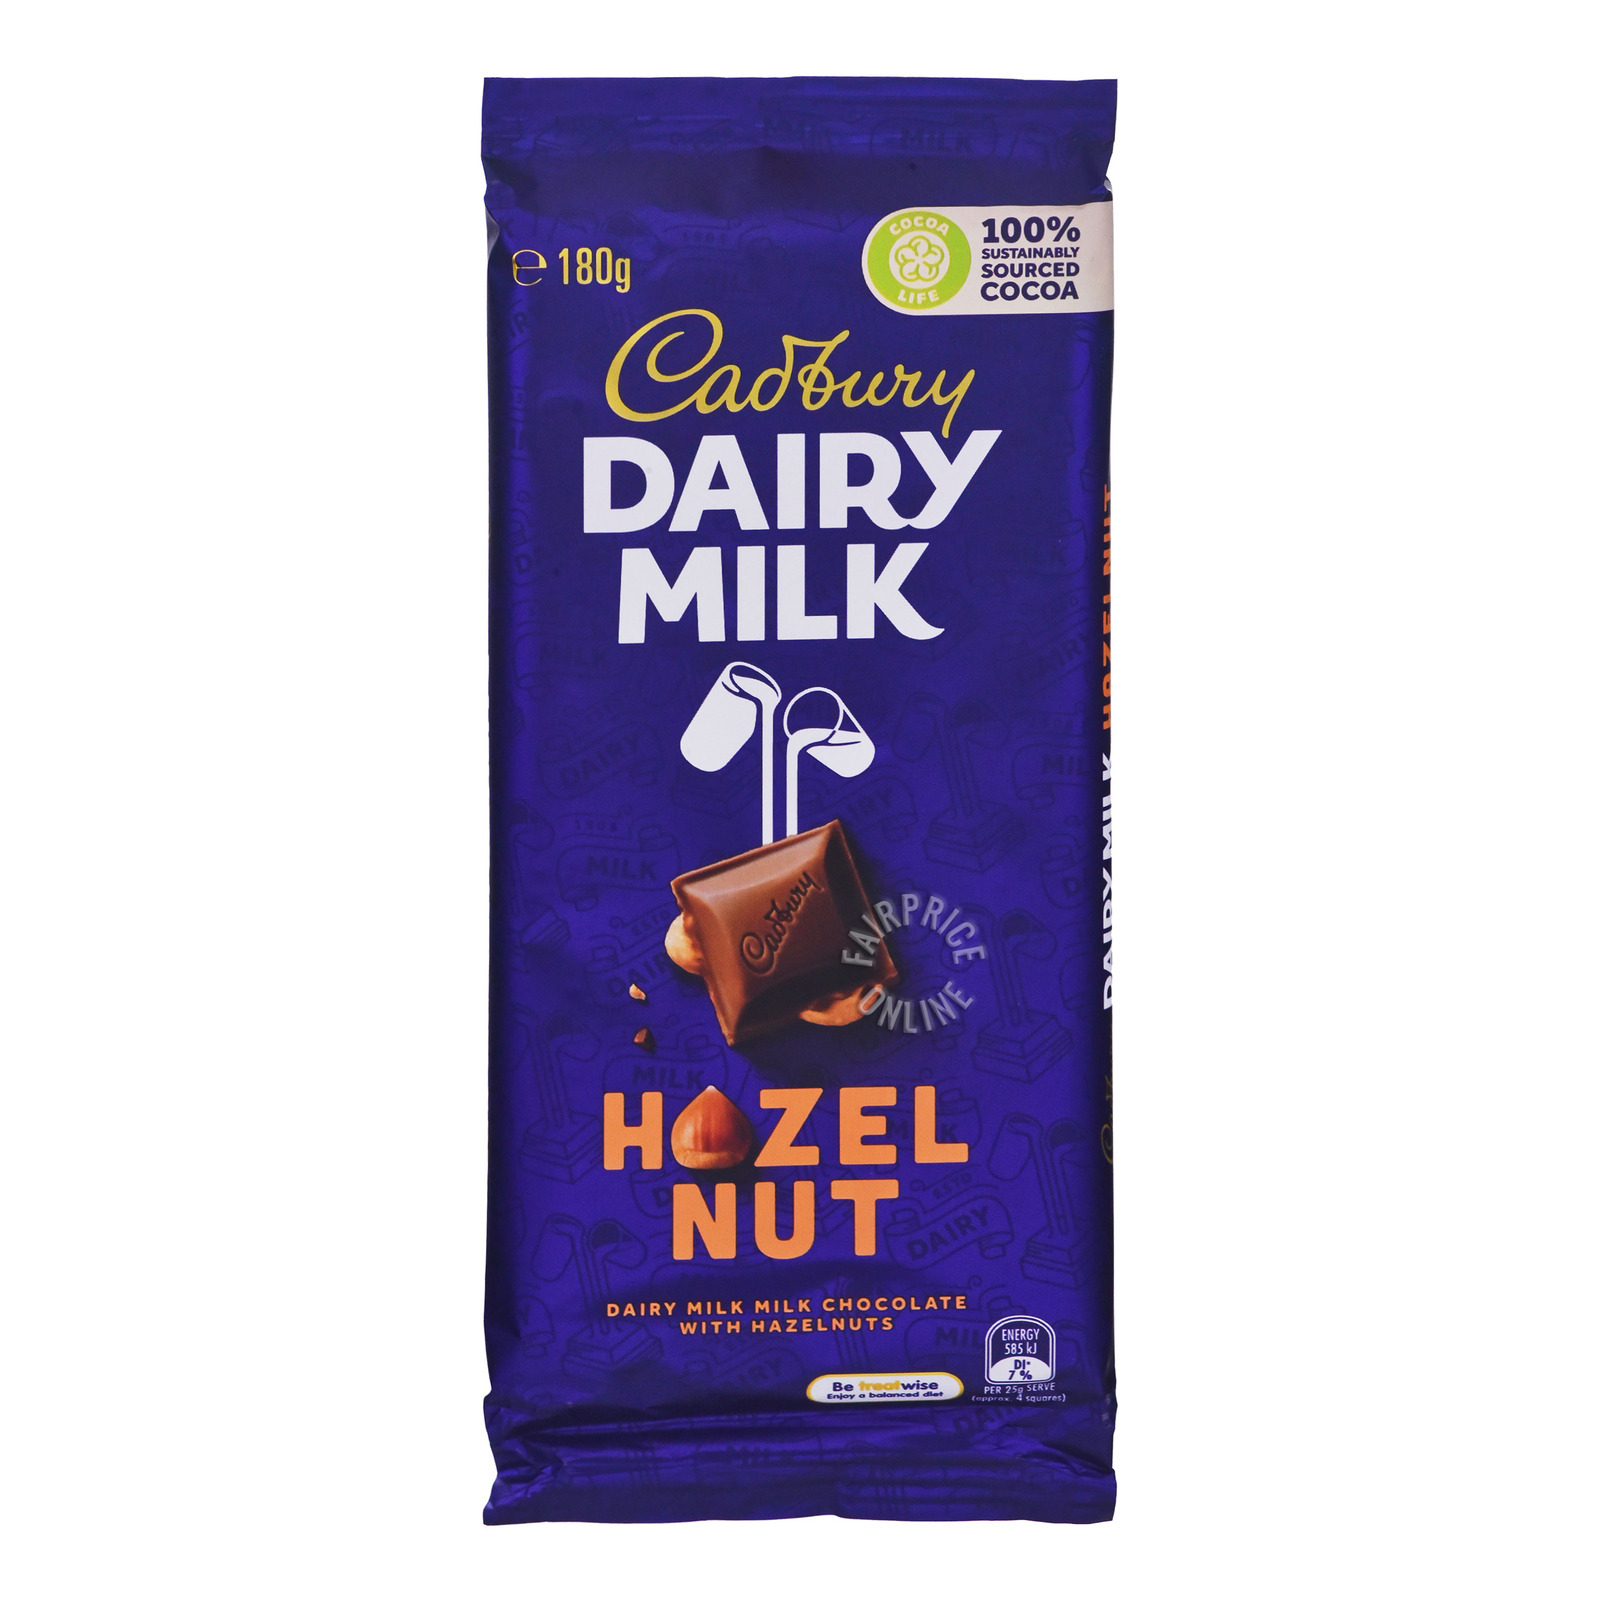 Cadbury Dairy Milk Chocolate Block - Hazelnut